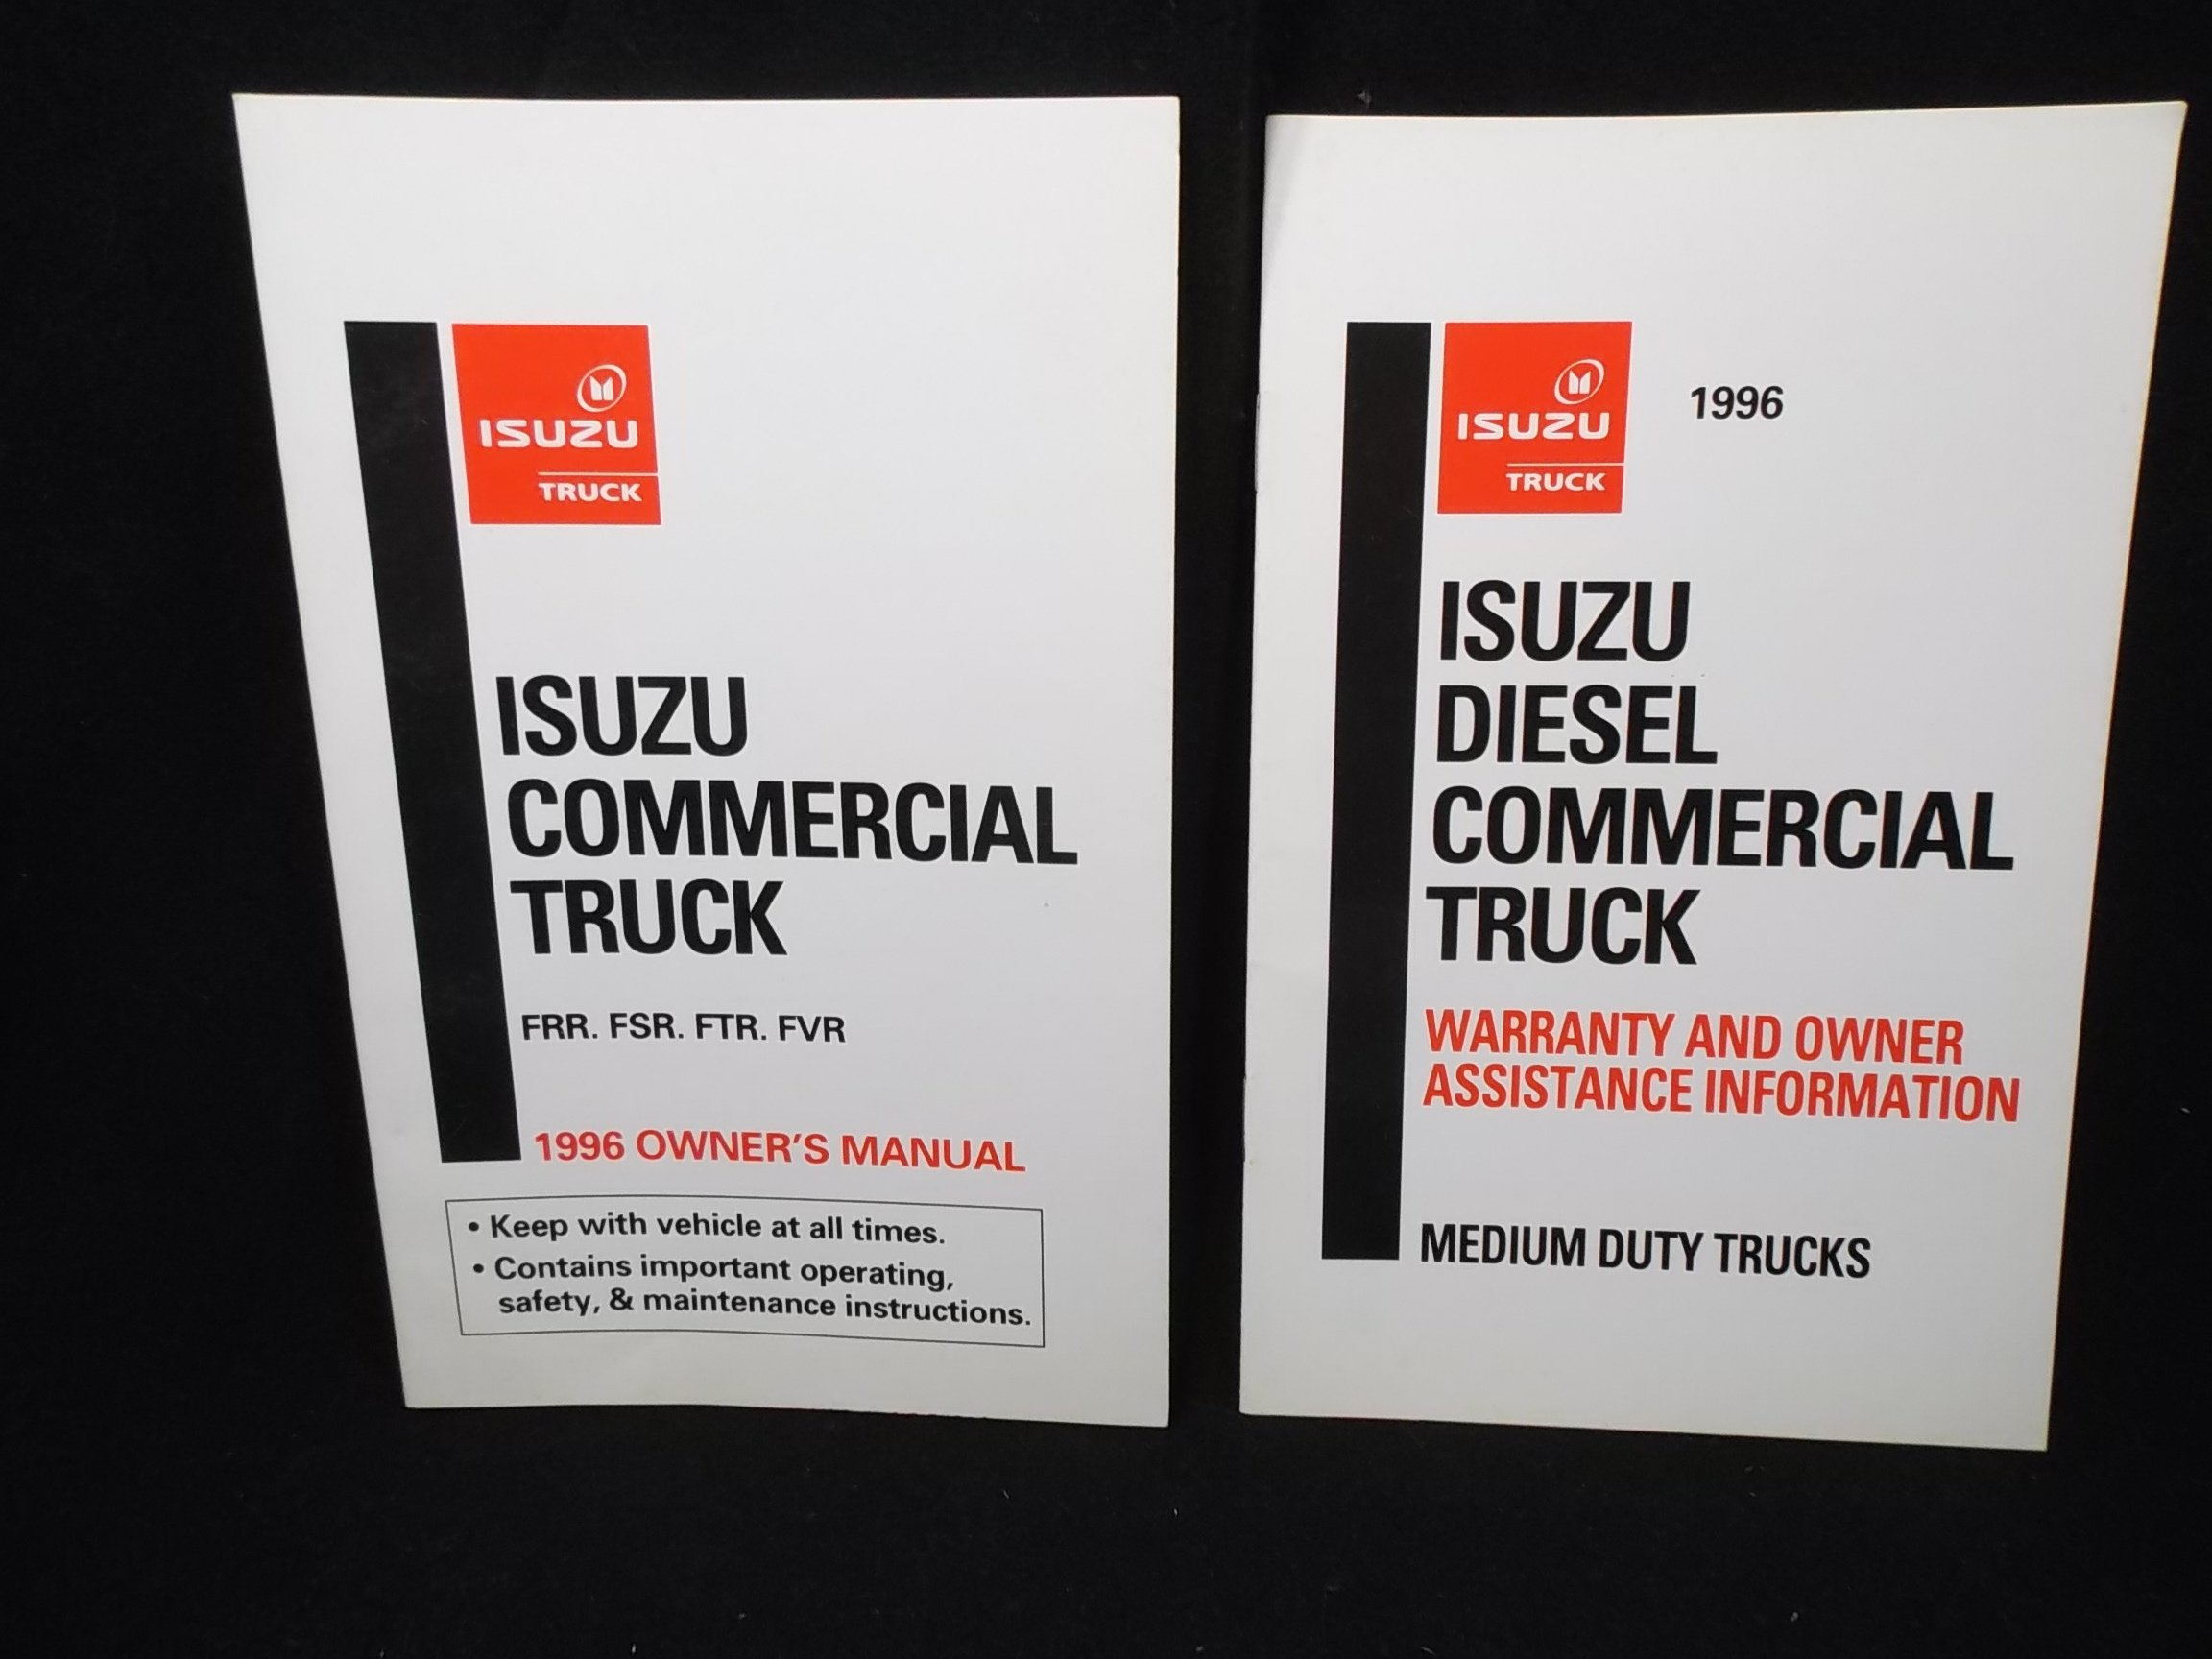 Isuzu ftr service manual array isuzu fsr ftr fvr frr 1996 commercial truck owners manual isuzu rh amazon com fandeluxe